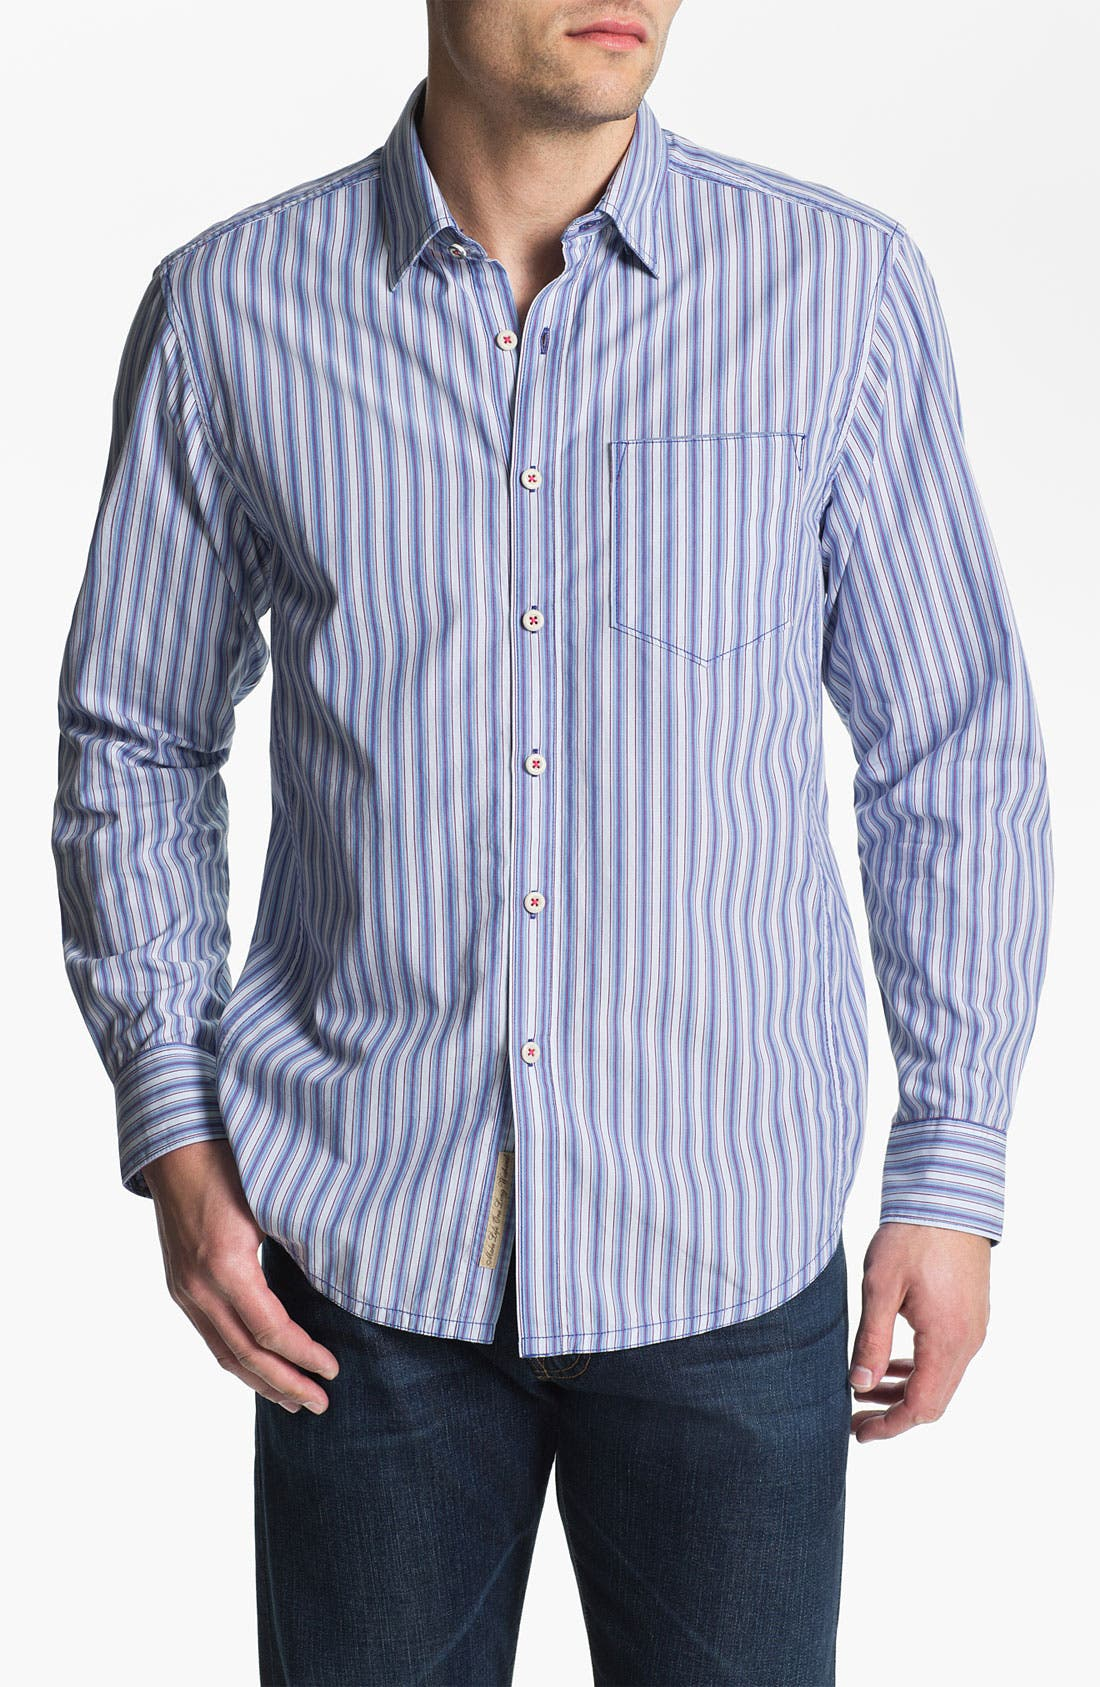 Main Image - Tommy Bahama Denim 'Stripe Tease' Sport Shirt